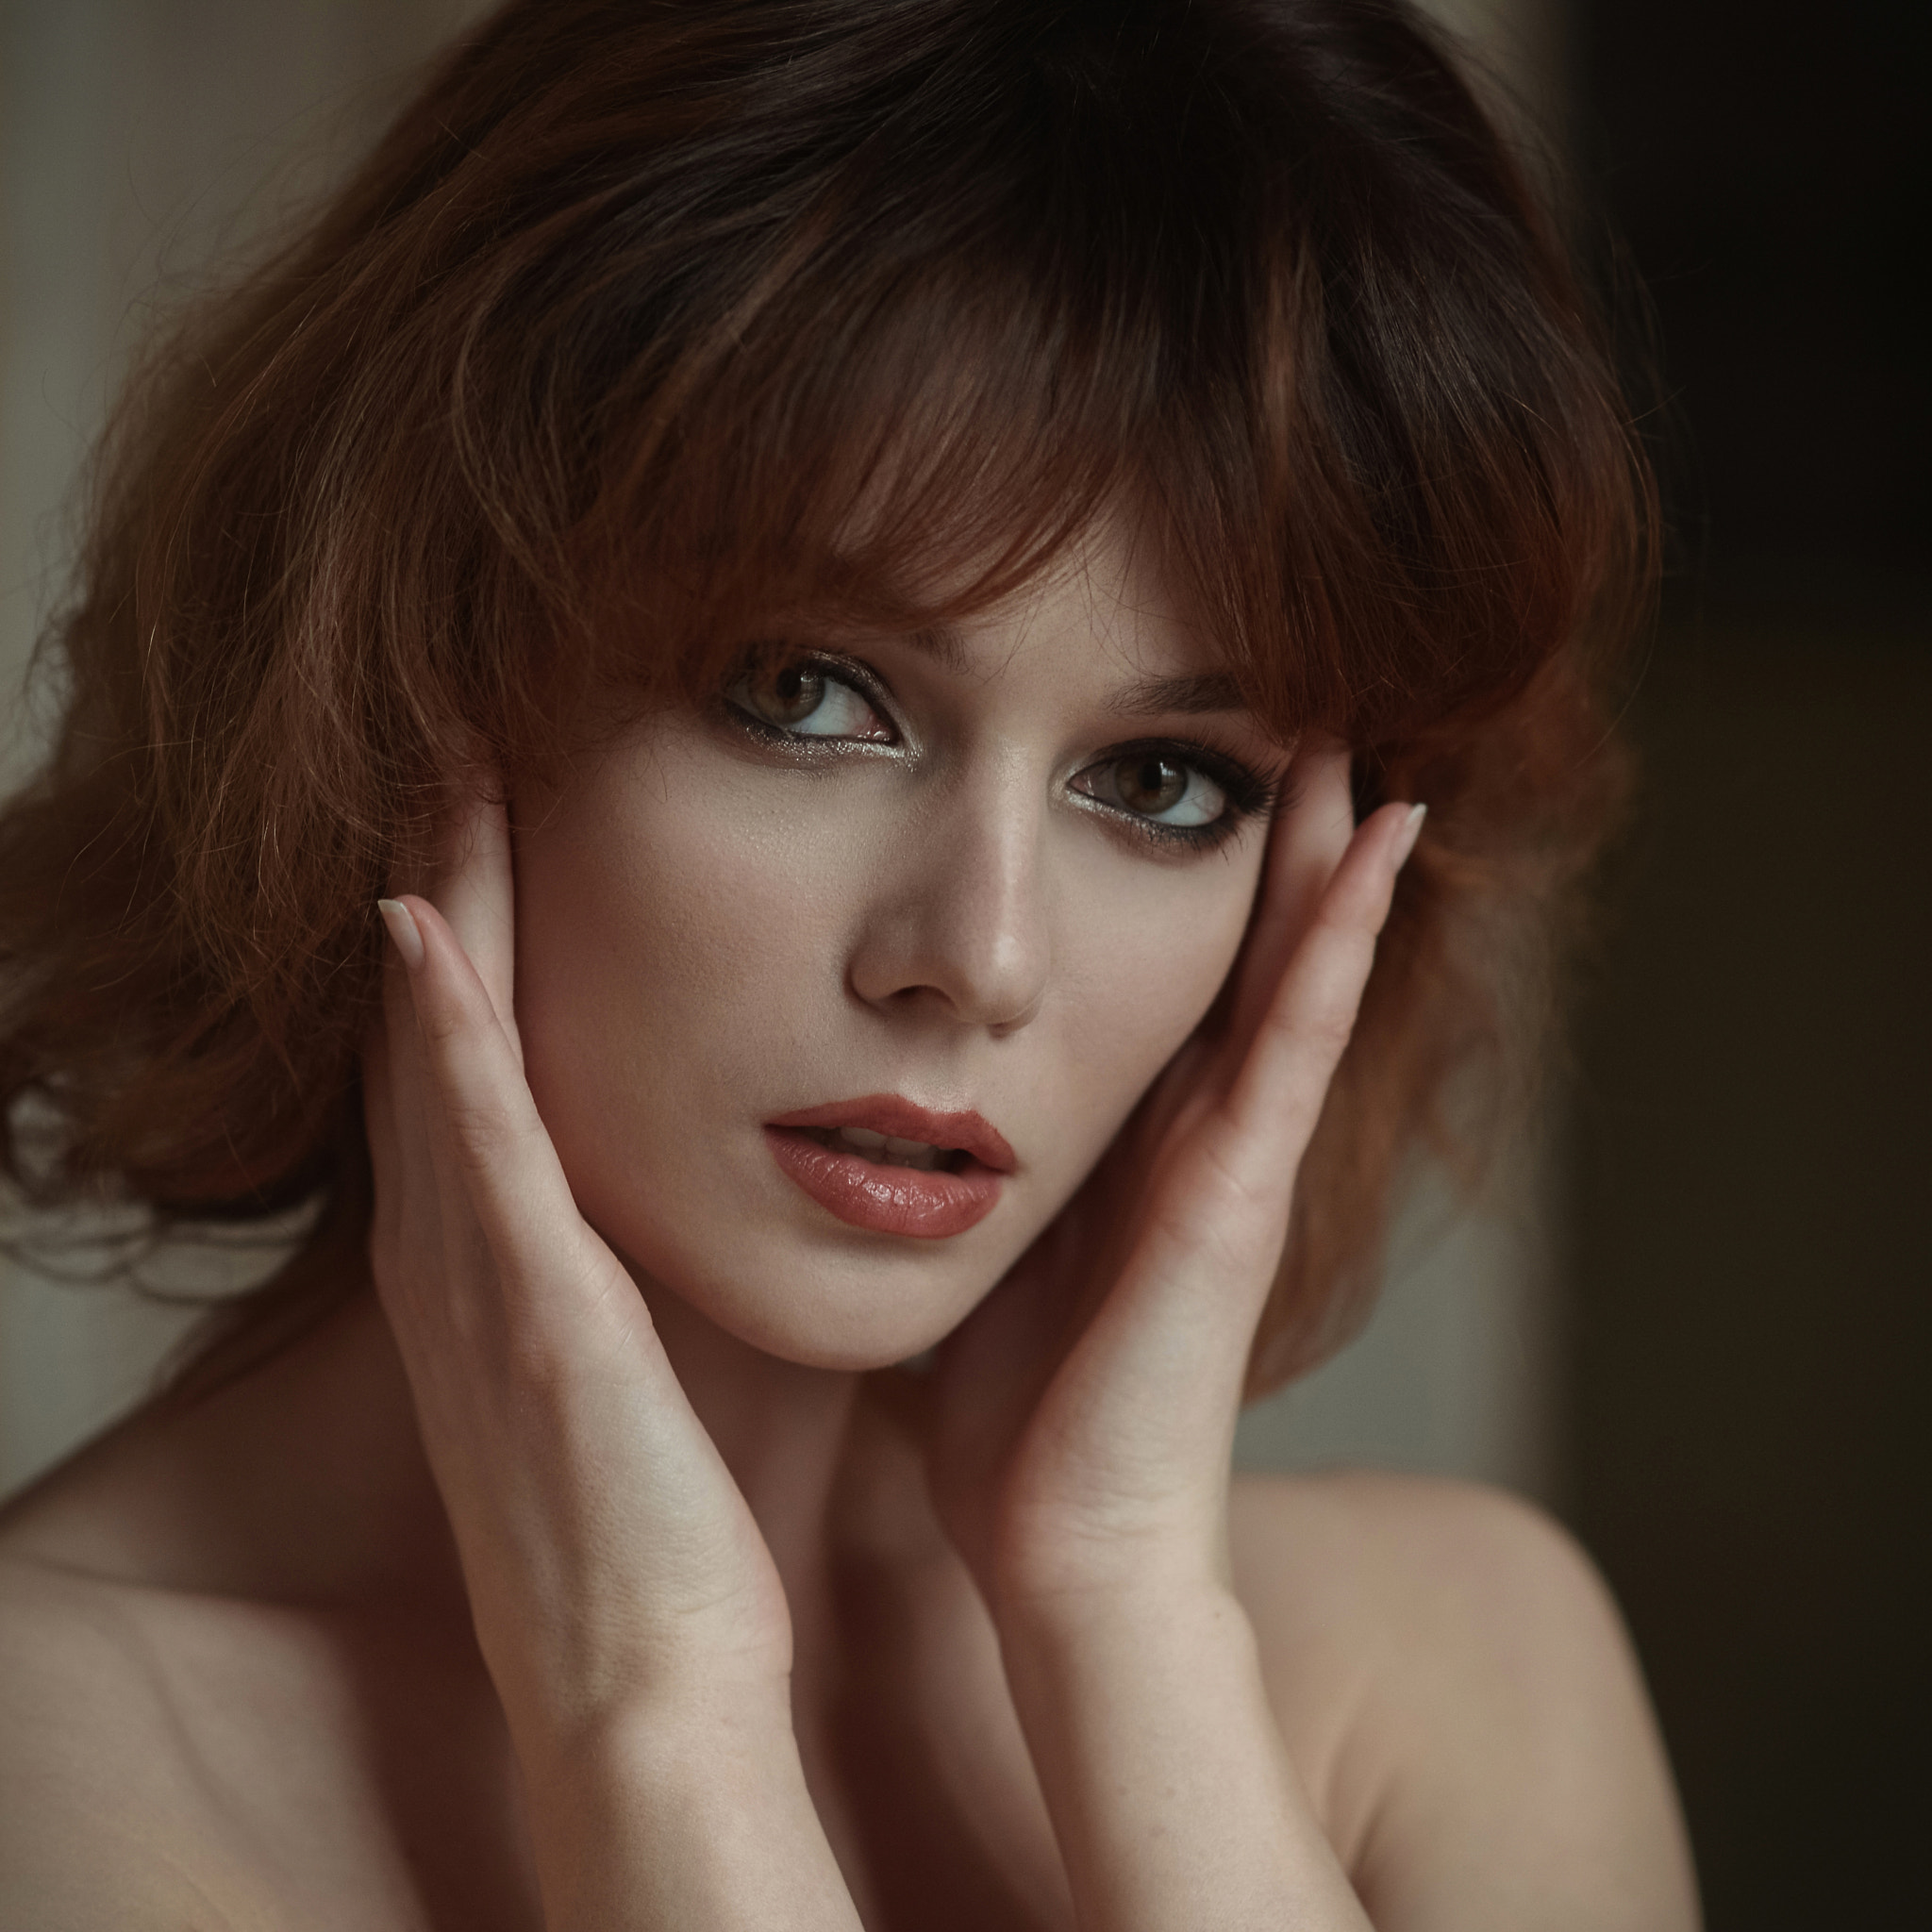 People 2048x2048 Dmitry Levykin women brunette short hair makeup eyeshadow eyeliner lipstick hand on face looking at viewer portrait